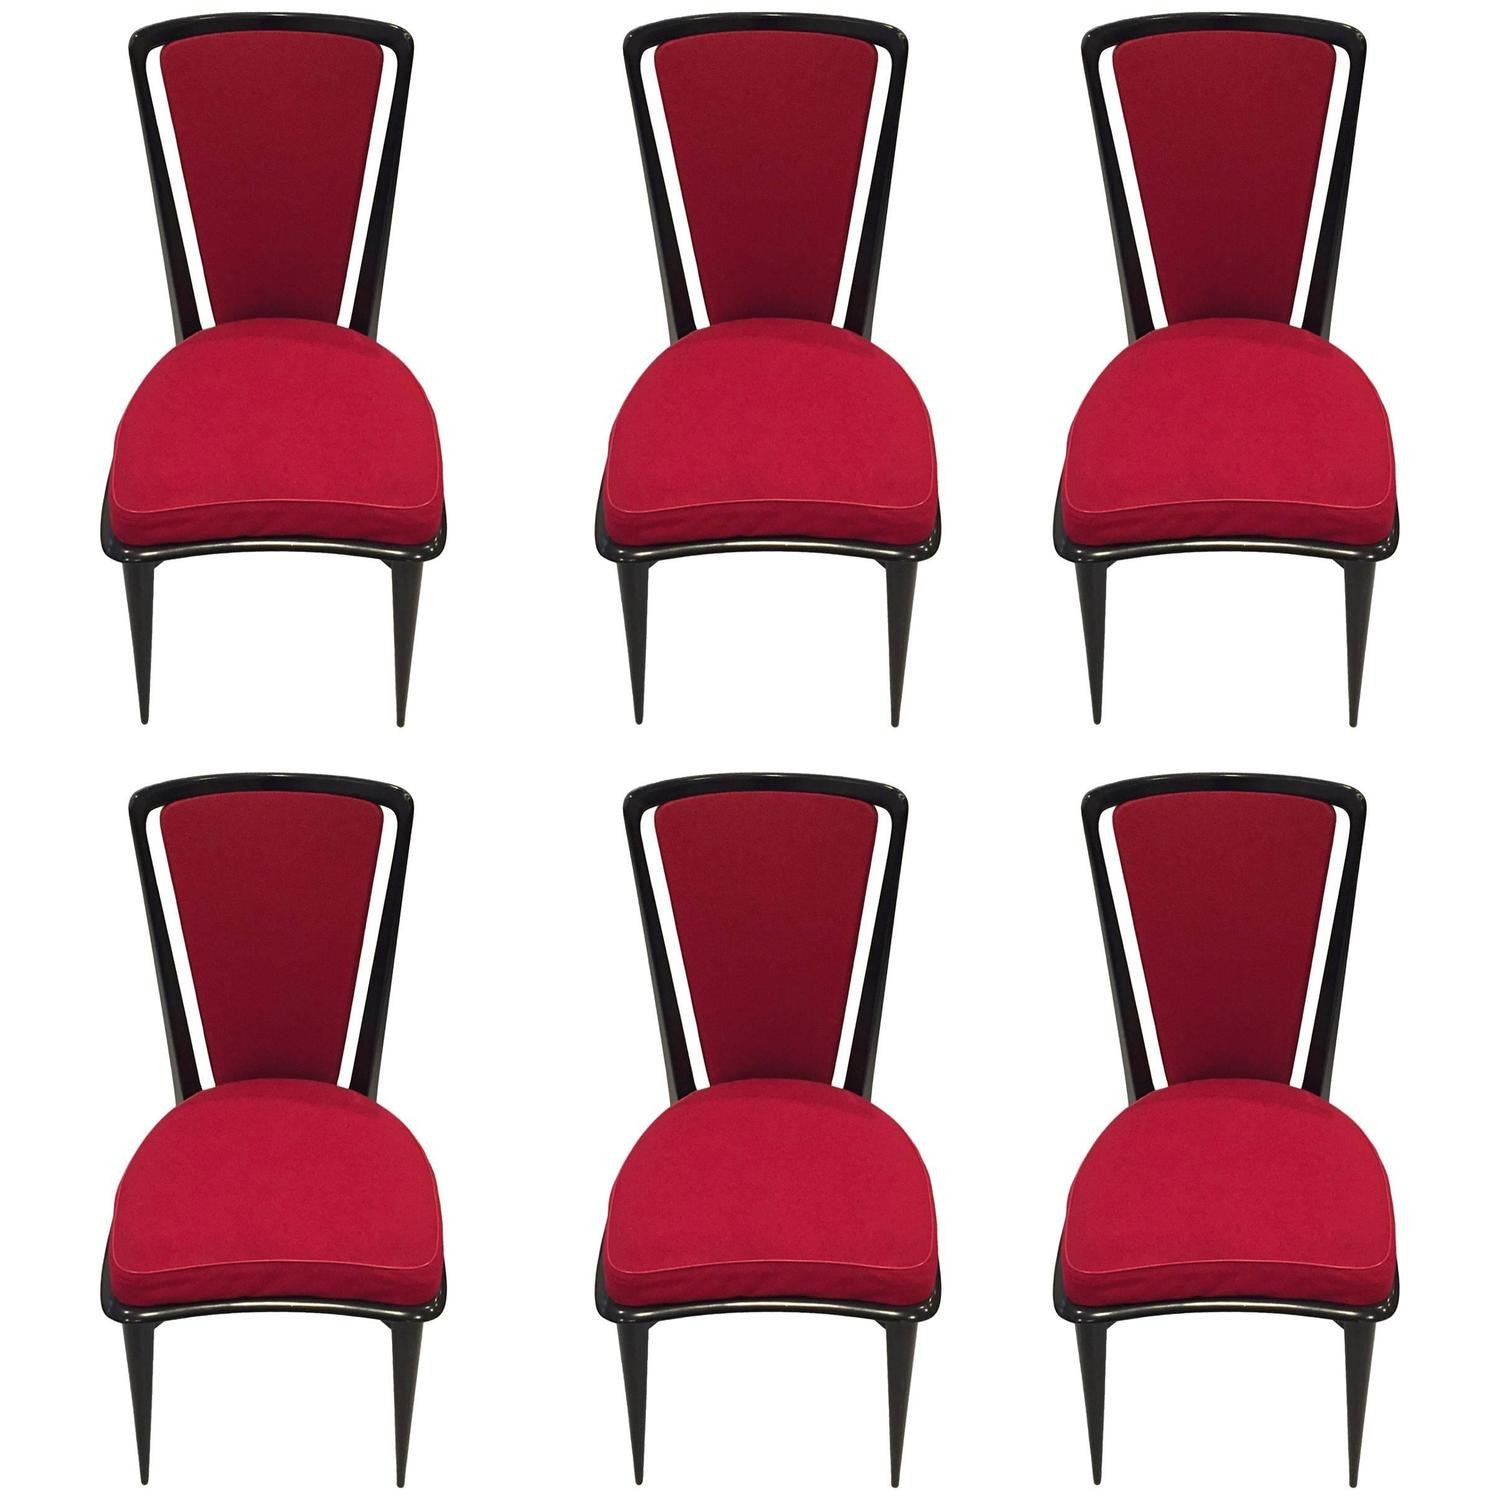 French Art Deco Black Lacquer Dining Chairs Set of Six – 1 of a